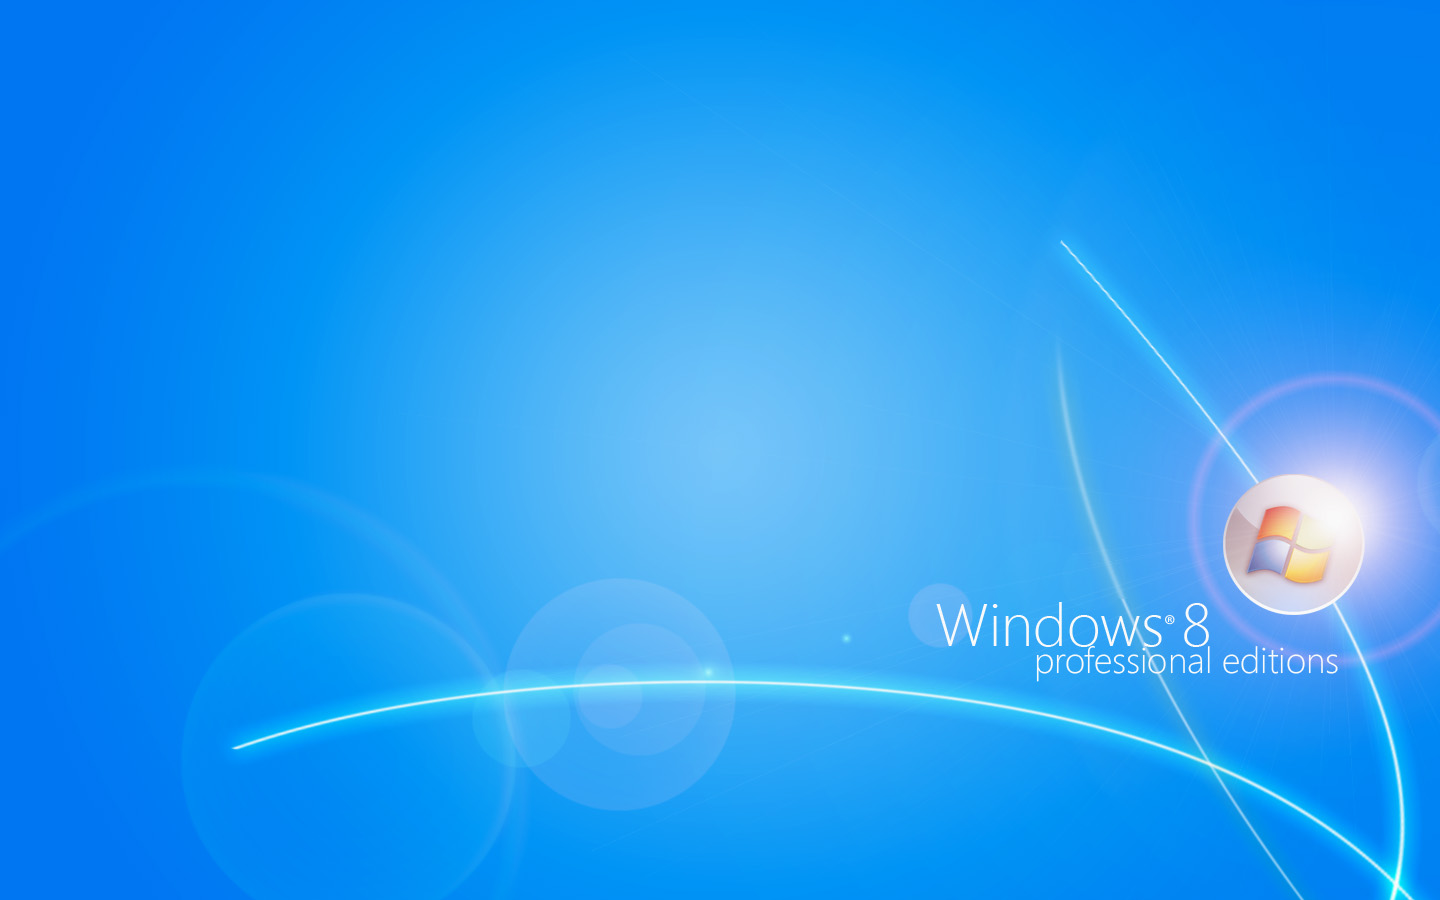 Free Live Wallpapers For Windows 8